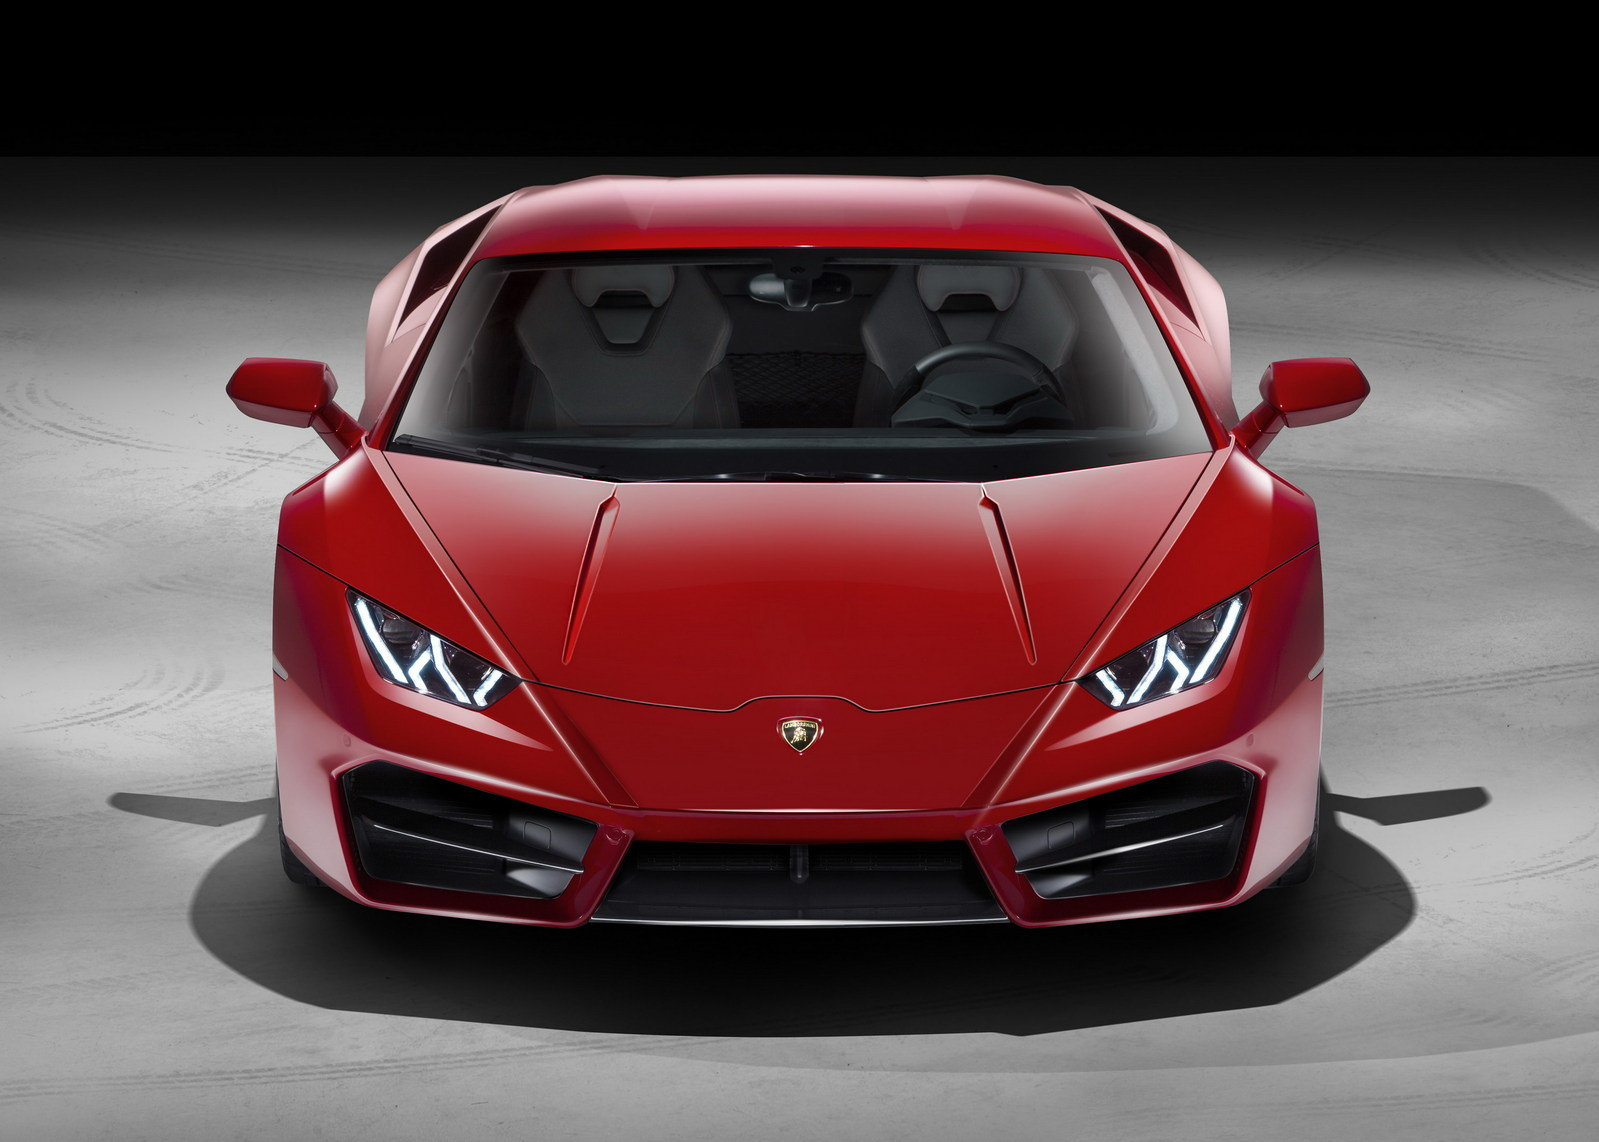 2016 lamborghini huracan lp 580 2 picture 655906 car review top speed. Black Bedroom Furniture Sets. Home Design Ideas